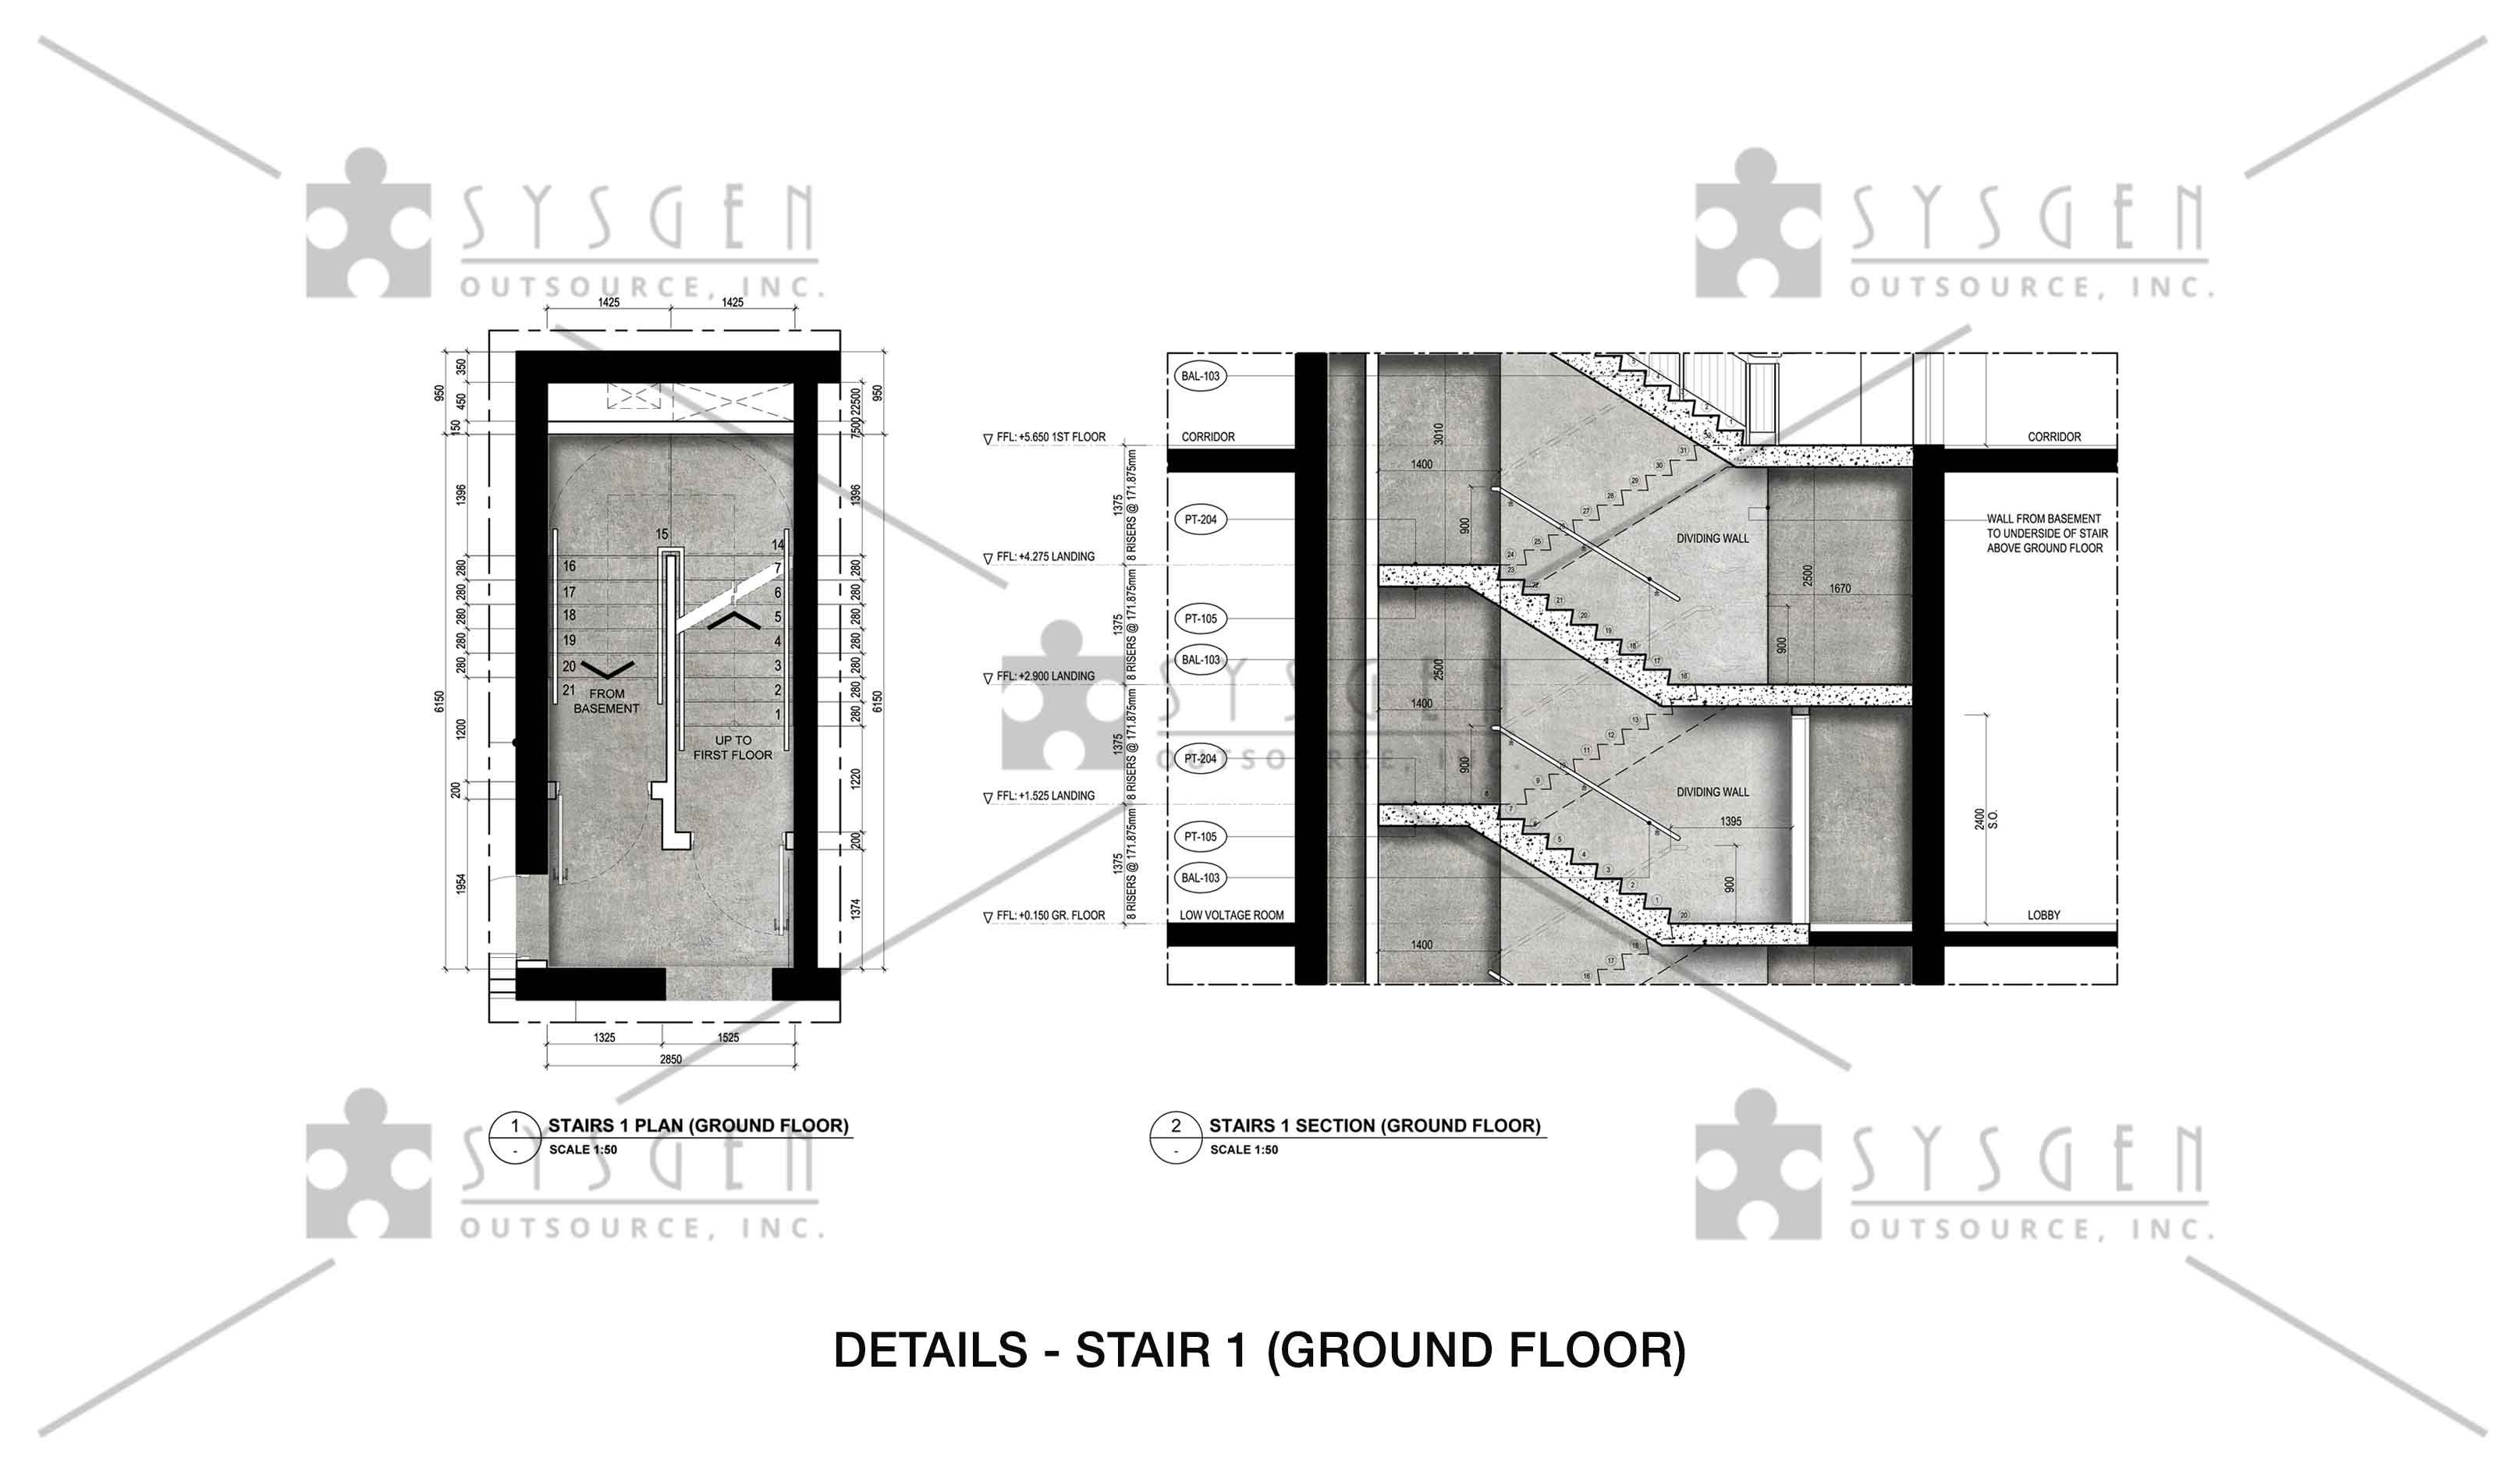 sysgen-outsource-cad-outsourcing-services-sketch-up-apartment15